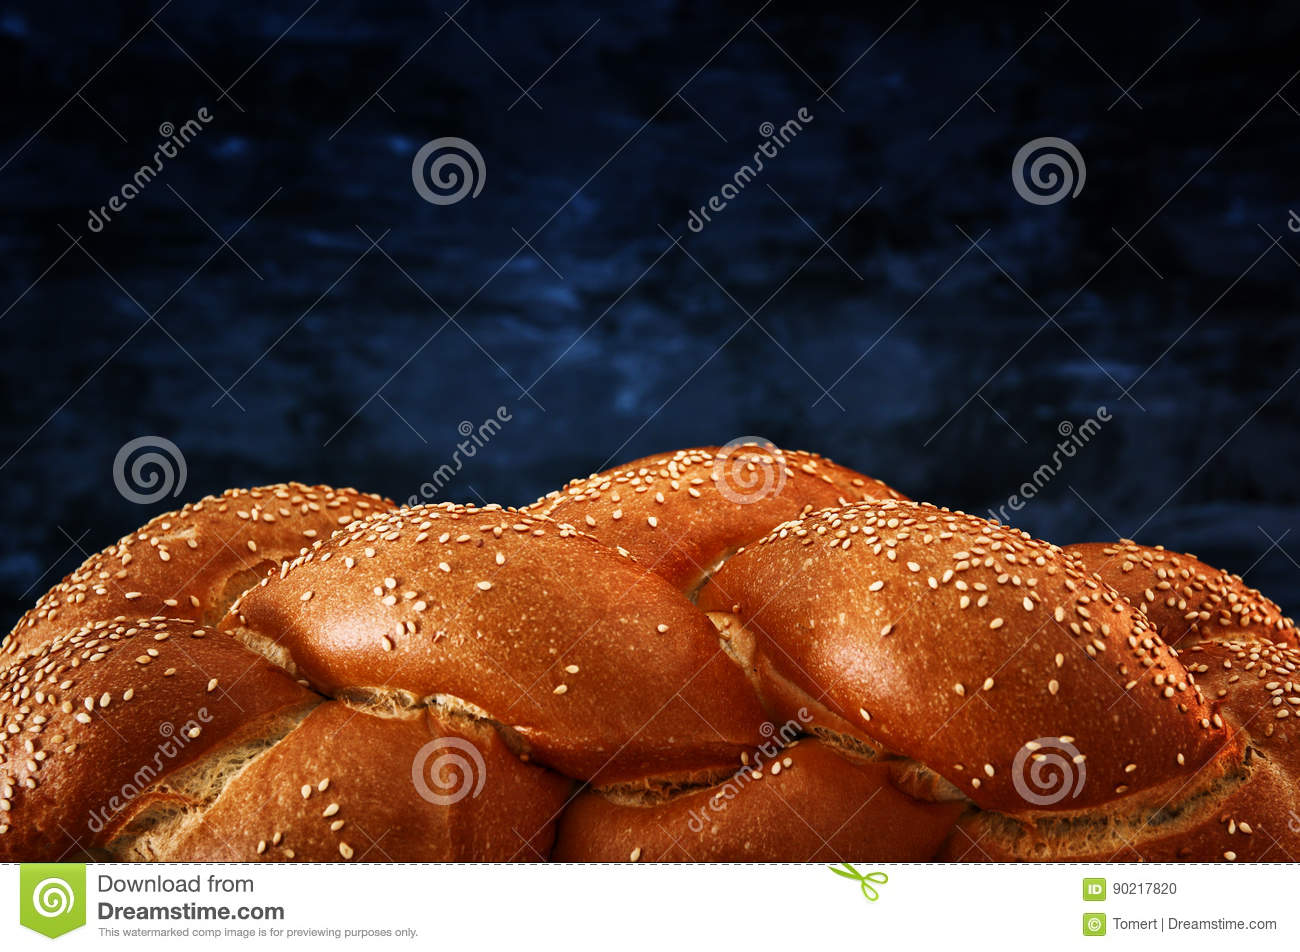 Traditional challah bread close up image